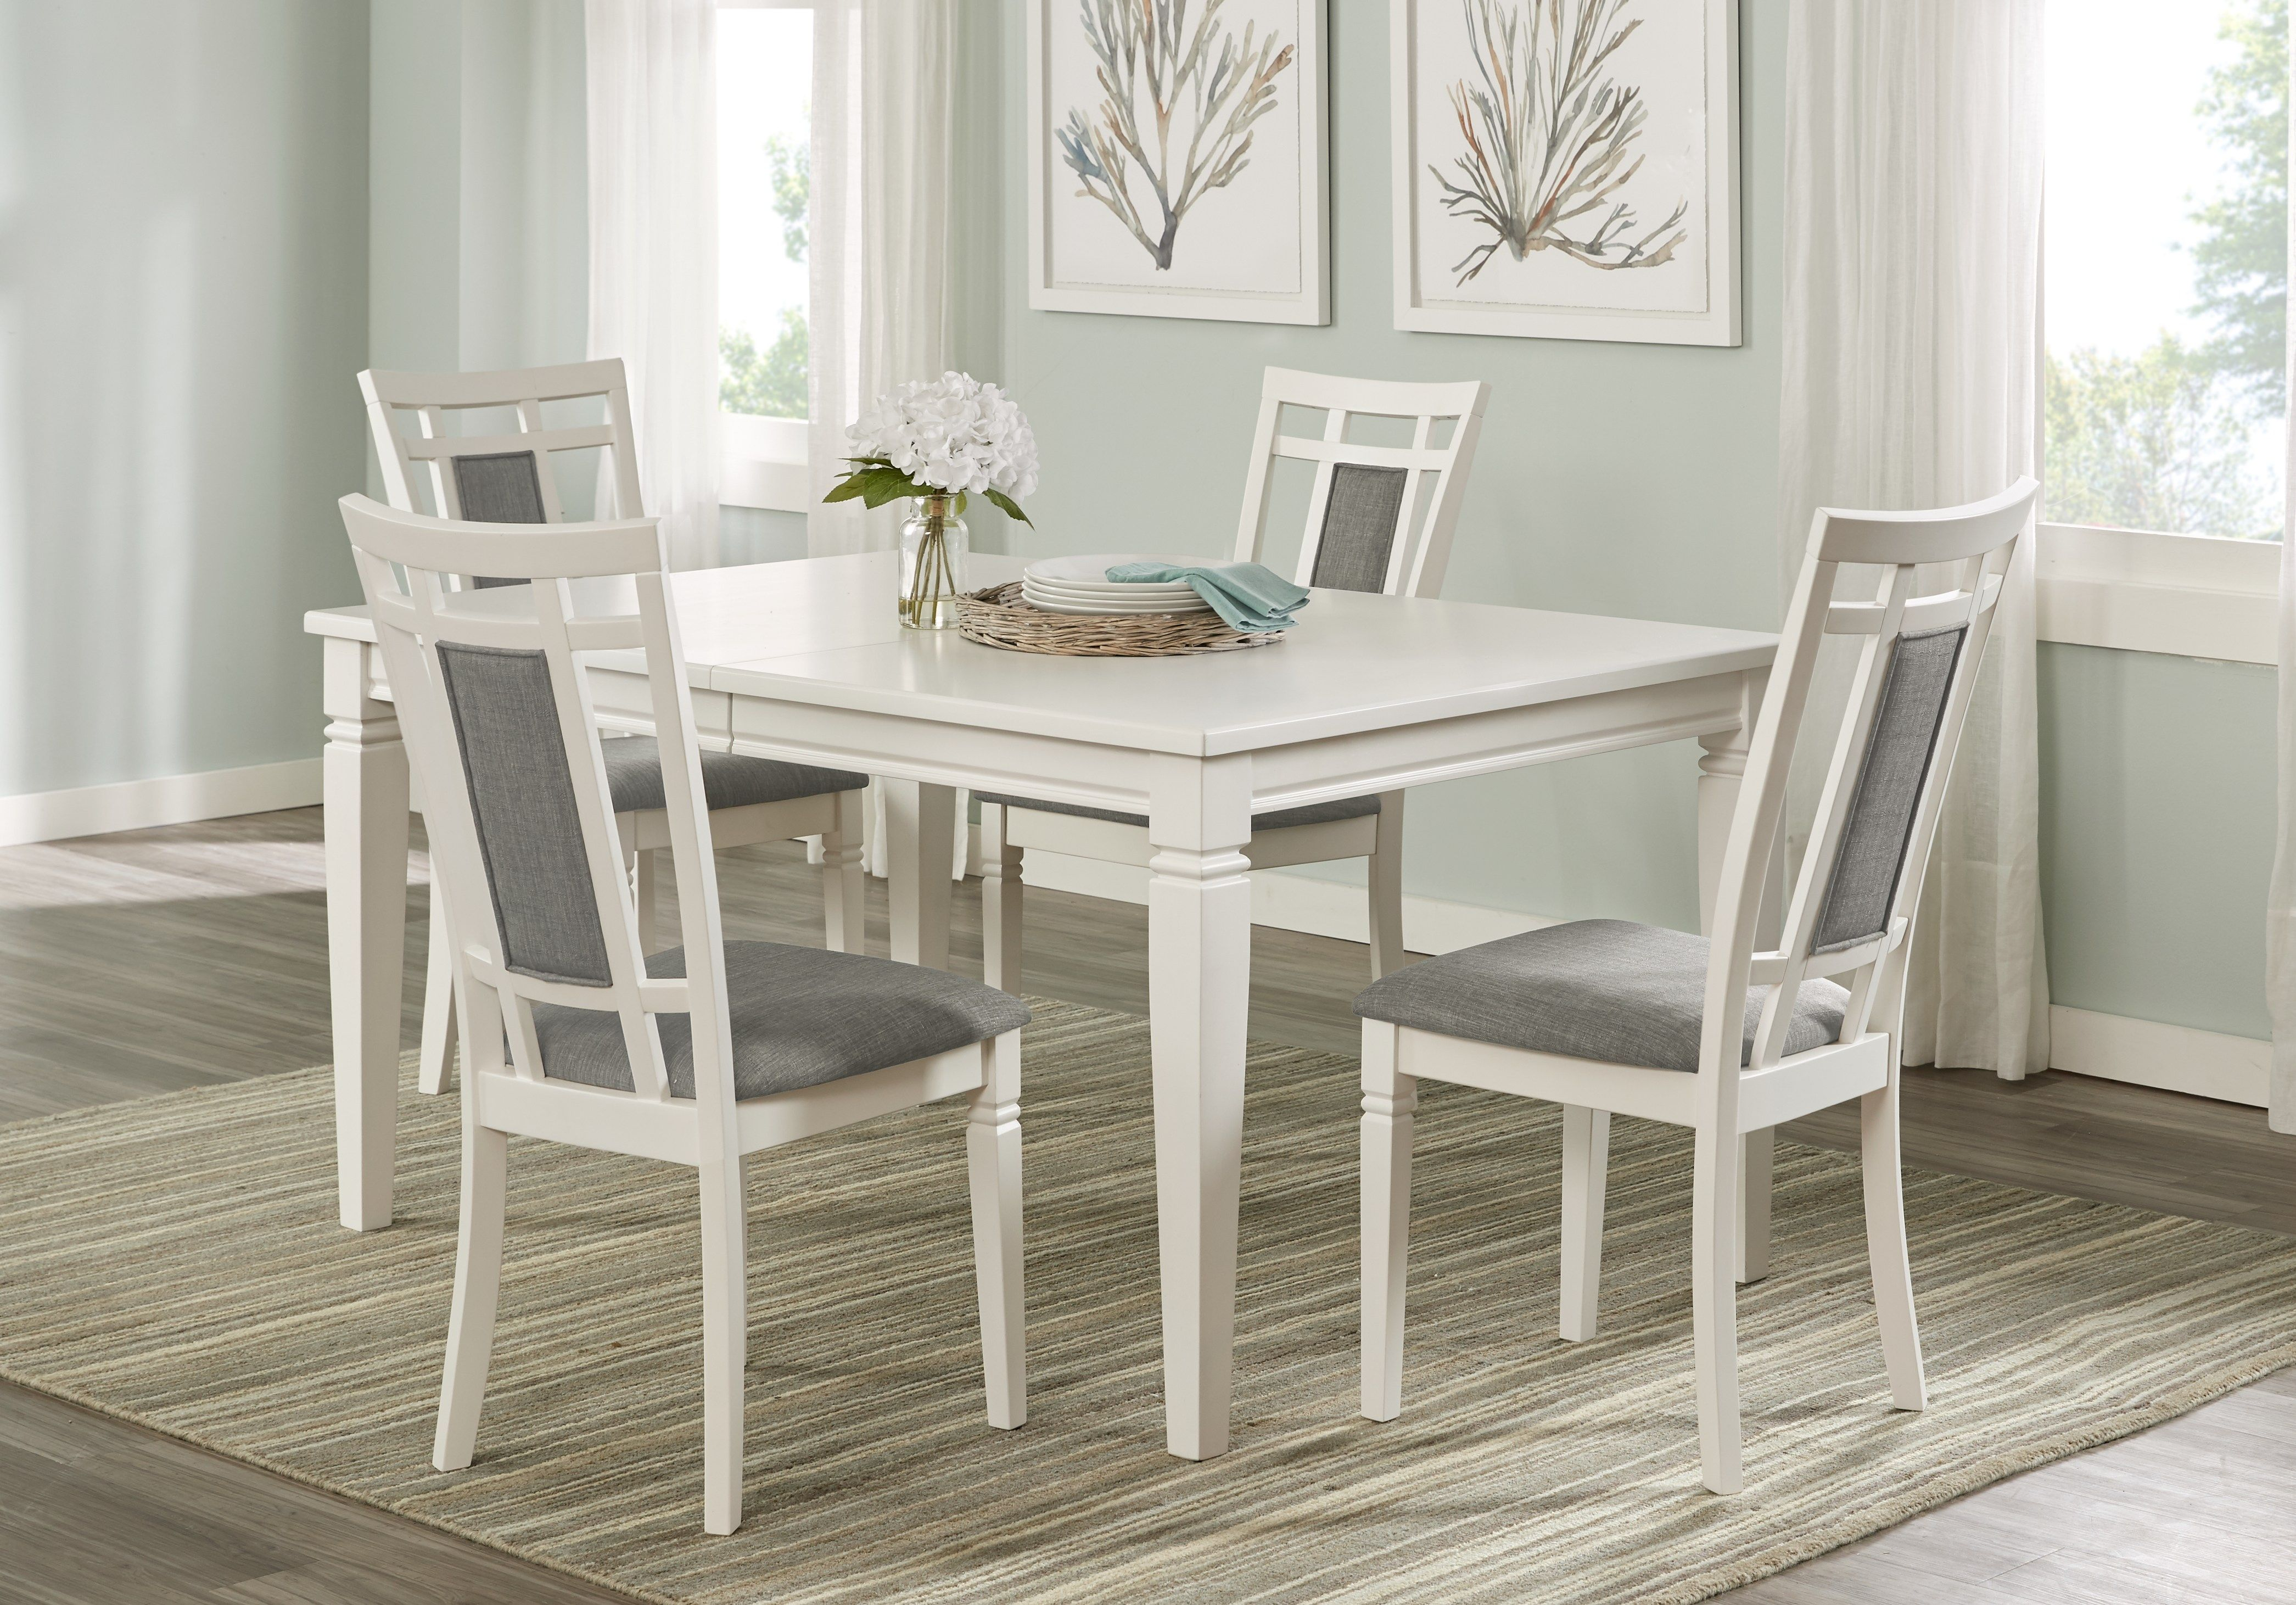 Riverdale White 5 Pc Rectangle Dining Room Dining Room Sets White Dining Room Sets White Dining Set Affordable Dining Room Sets